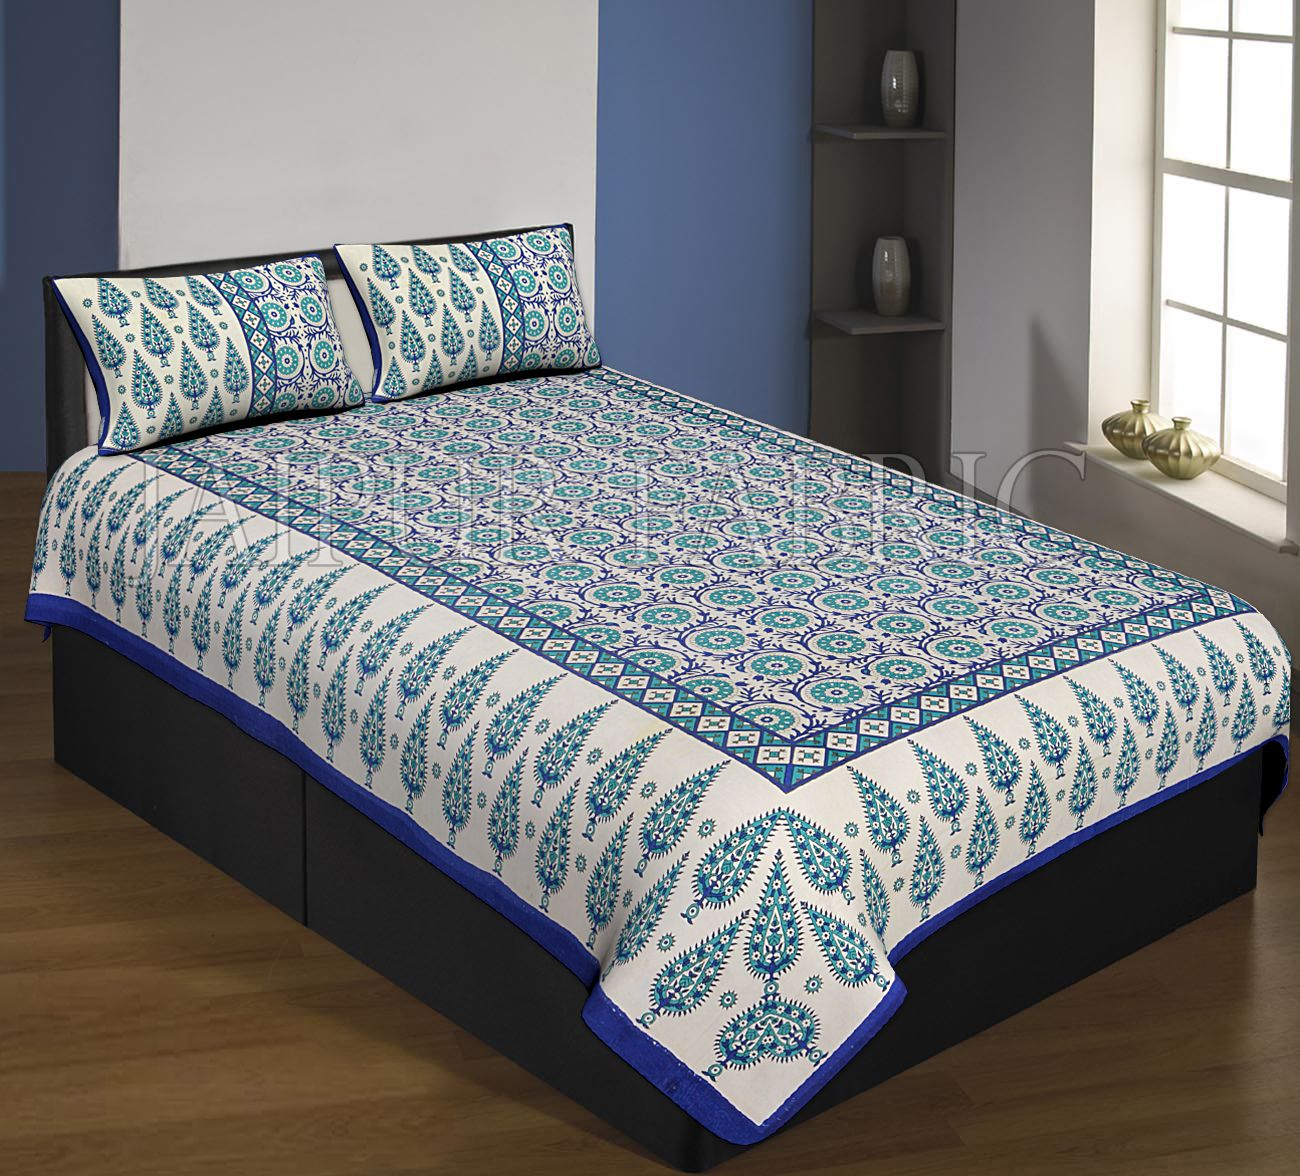 Navy Blue Boarder Cream Base With Navy Blue Leaf And Flower Pattern Single Bed Sheet With 2 Pillow Cover